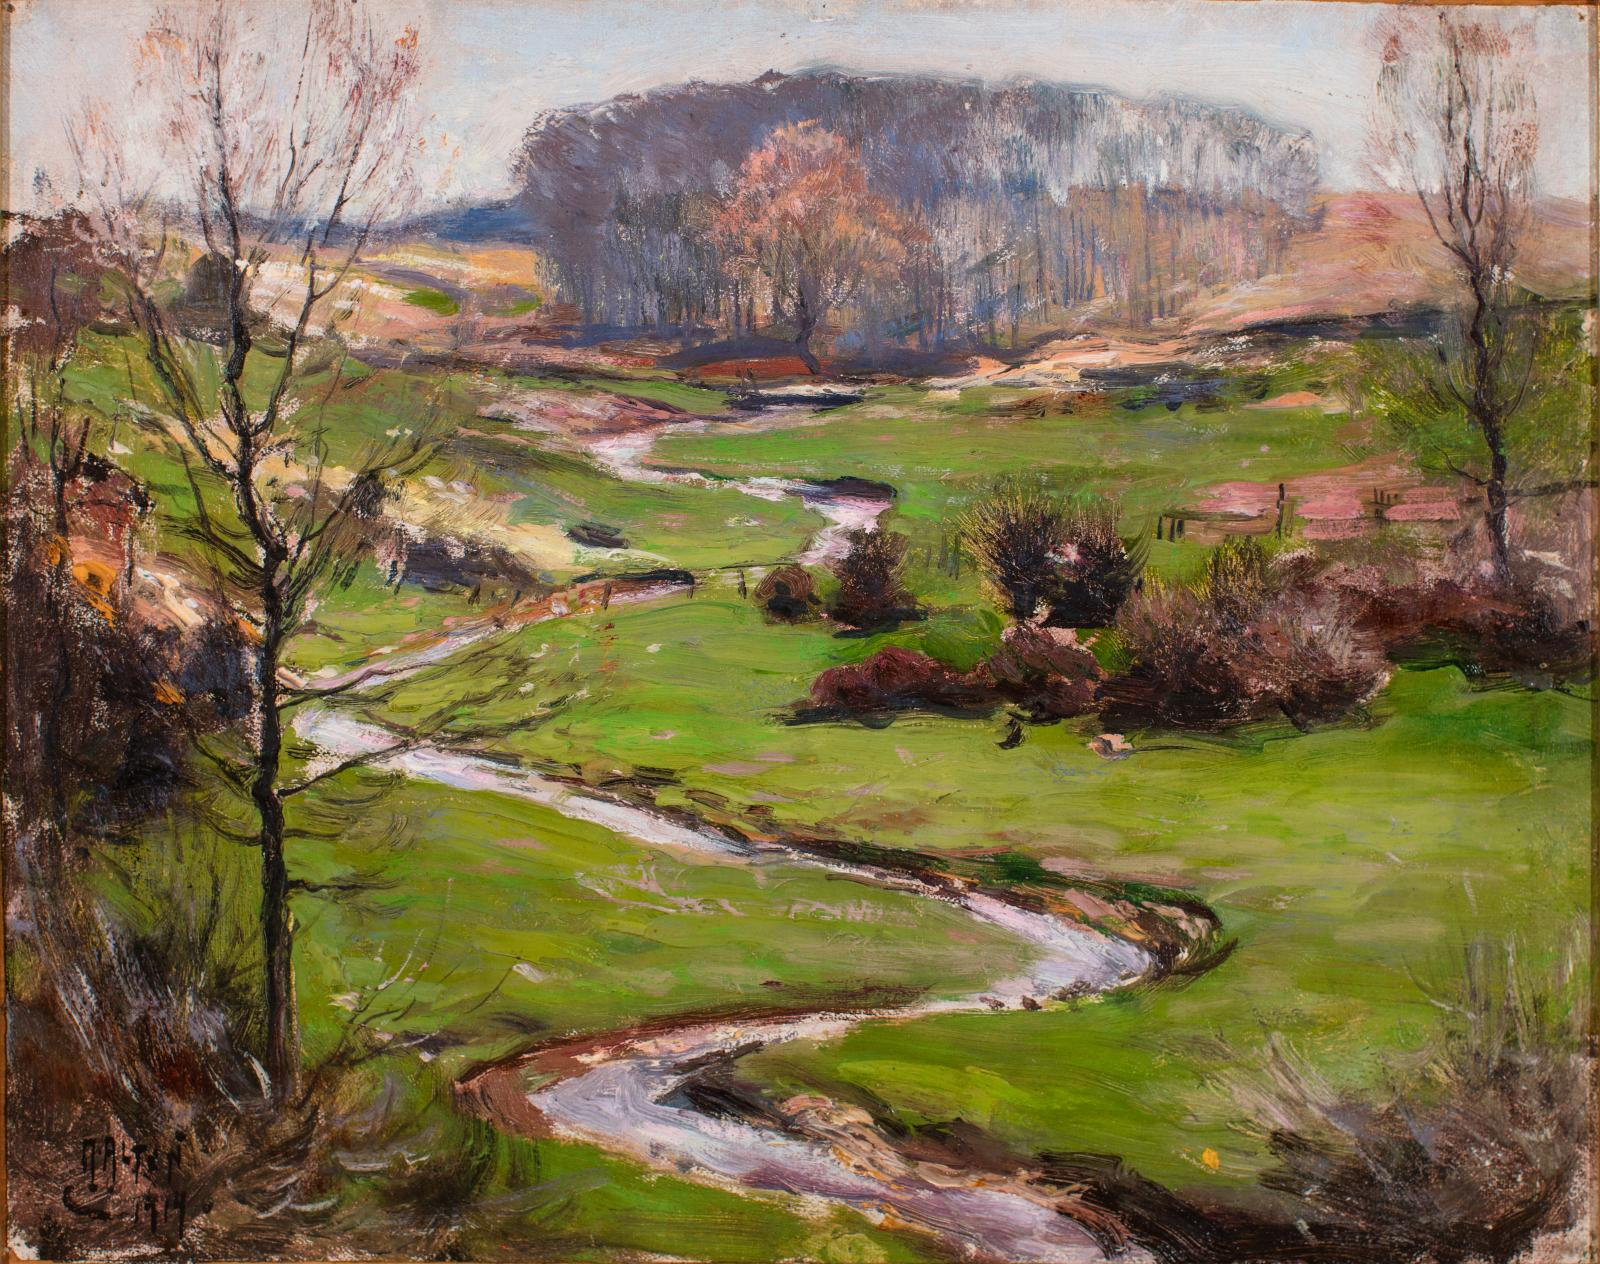 Landscape with green ground, bare trees, and meandering stream through the center of the image.